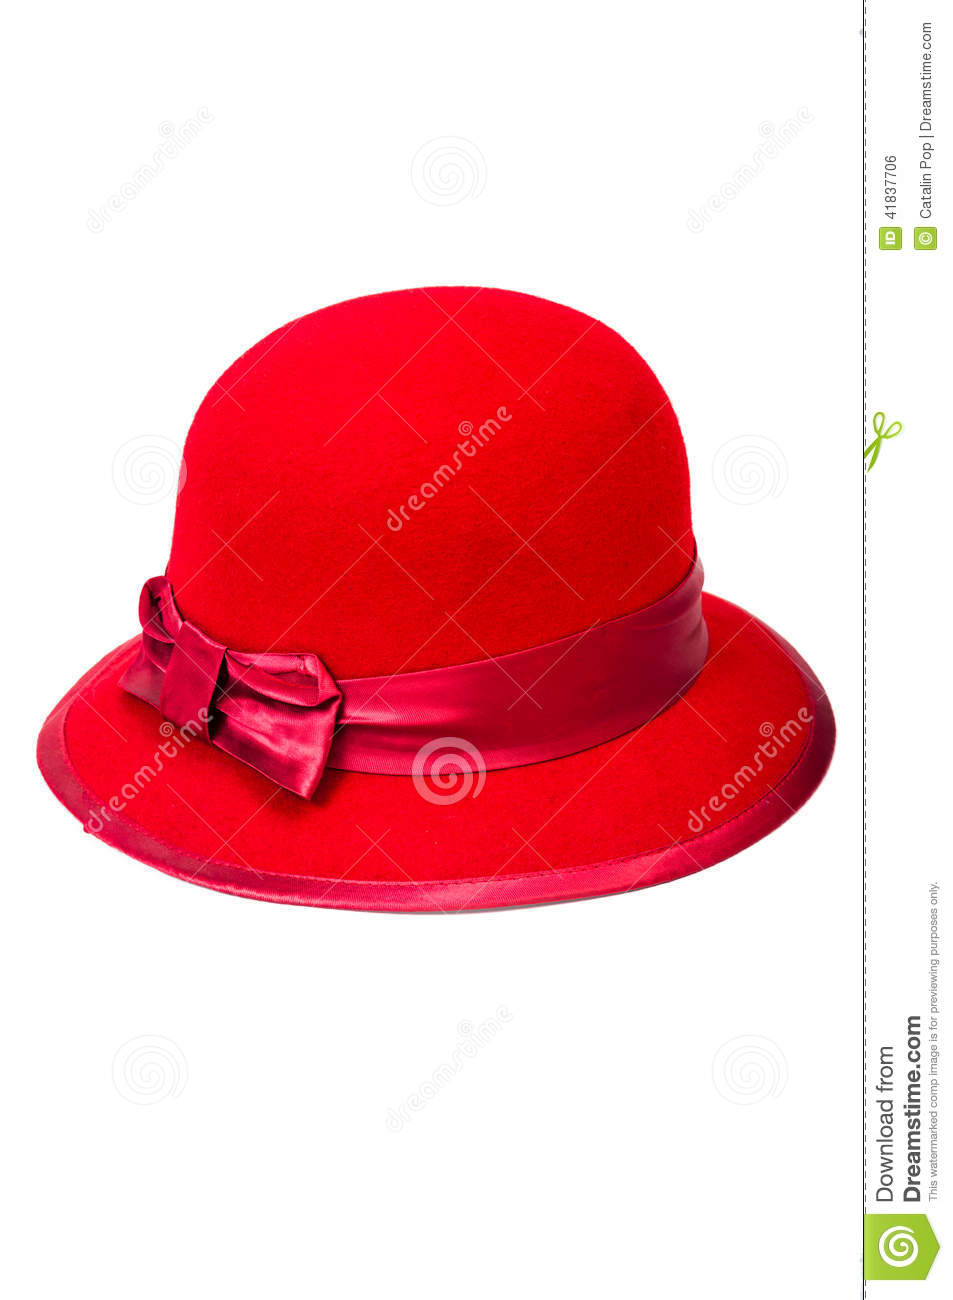 4645a9b8195d5 Red hat with classical look for women, isolated on white background. More  similar stock images